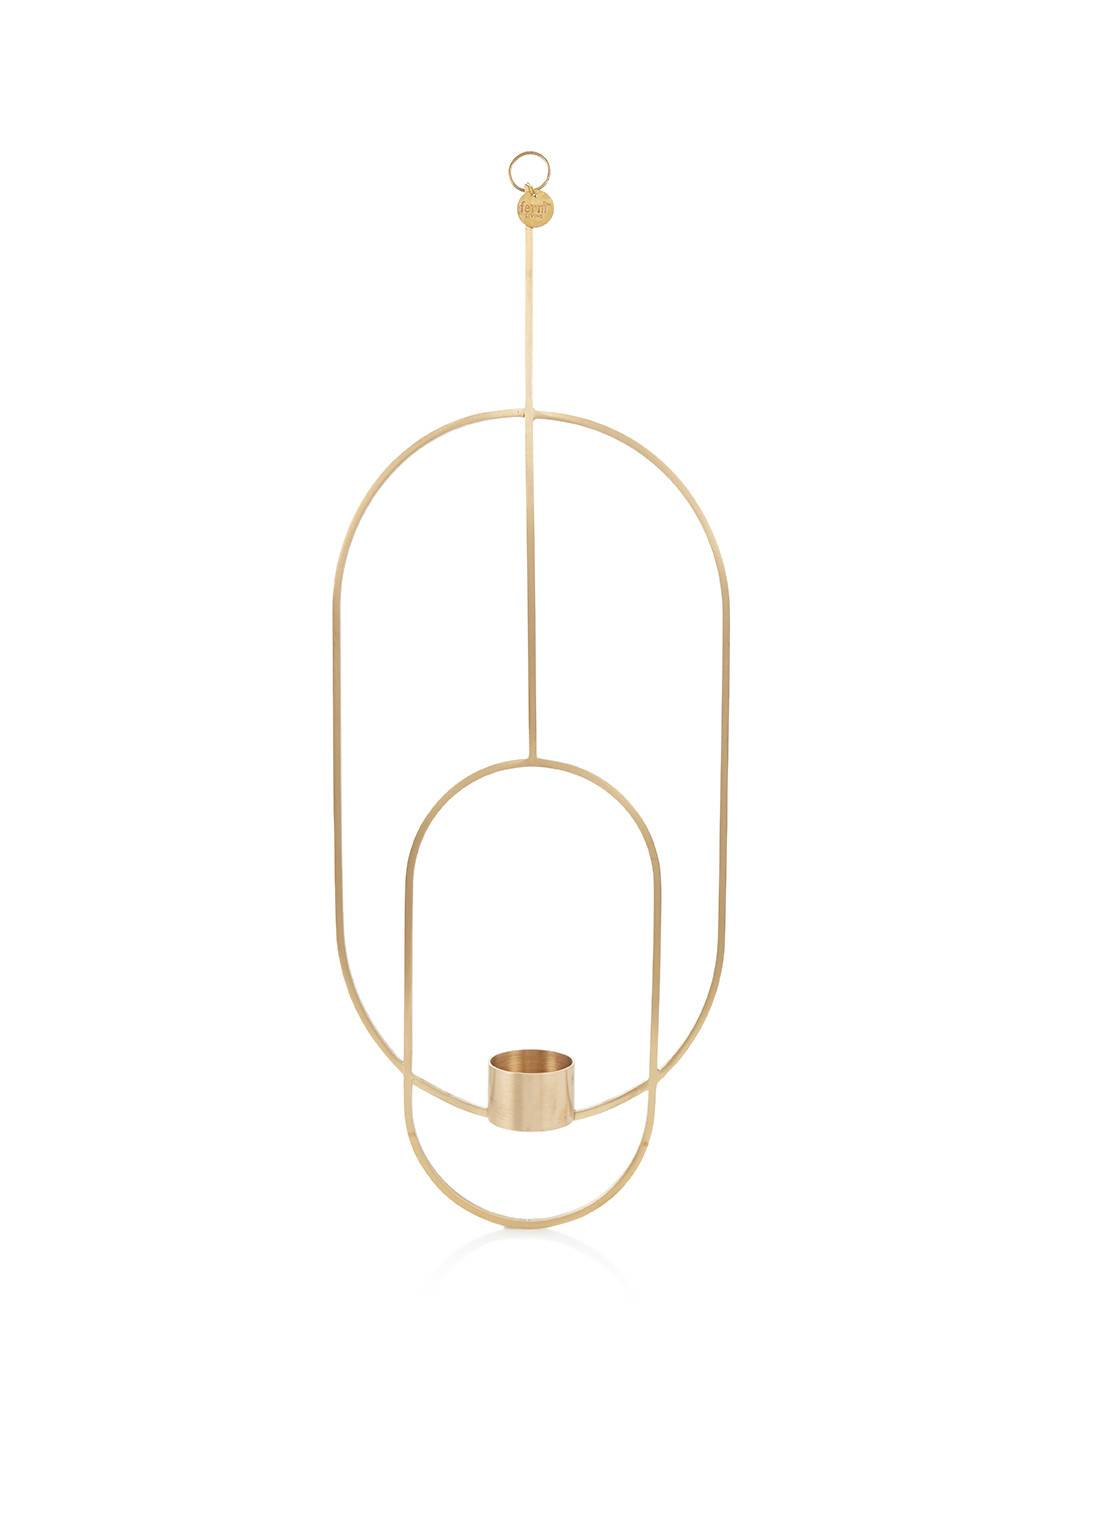 ferm living Photophore suspendu en laiton 50 cm - Or